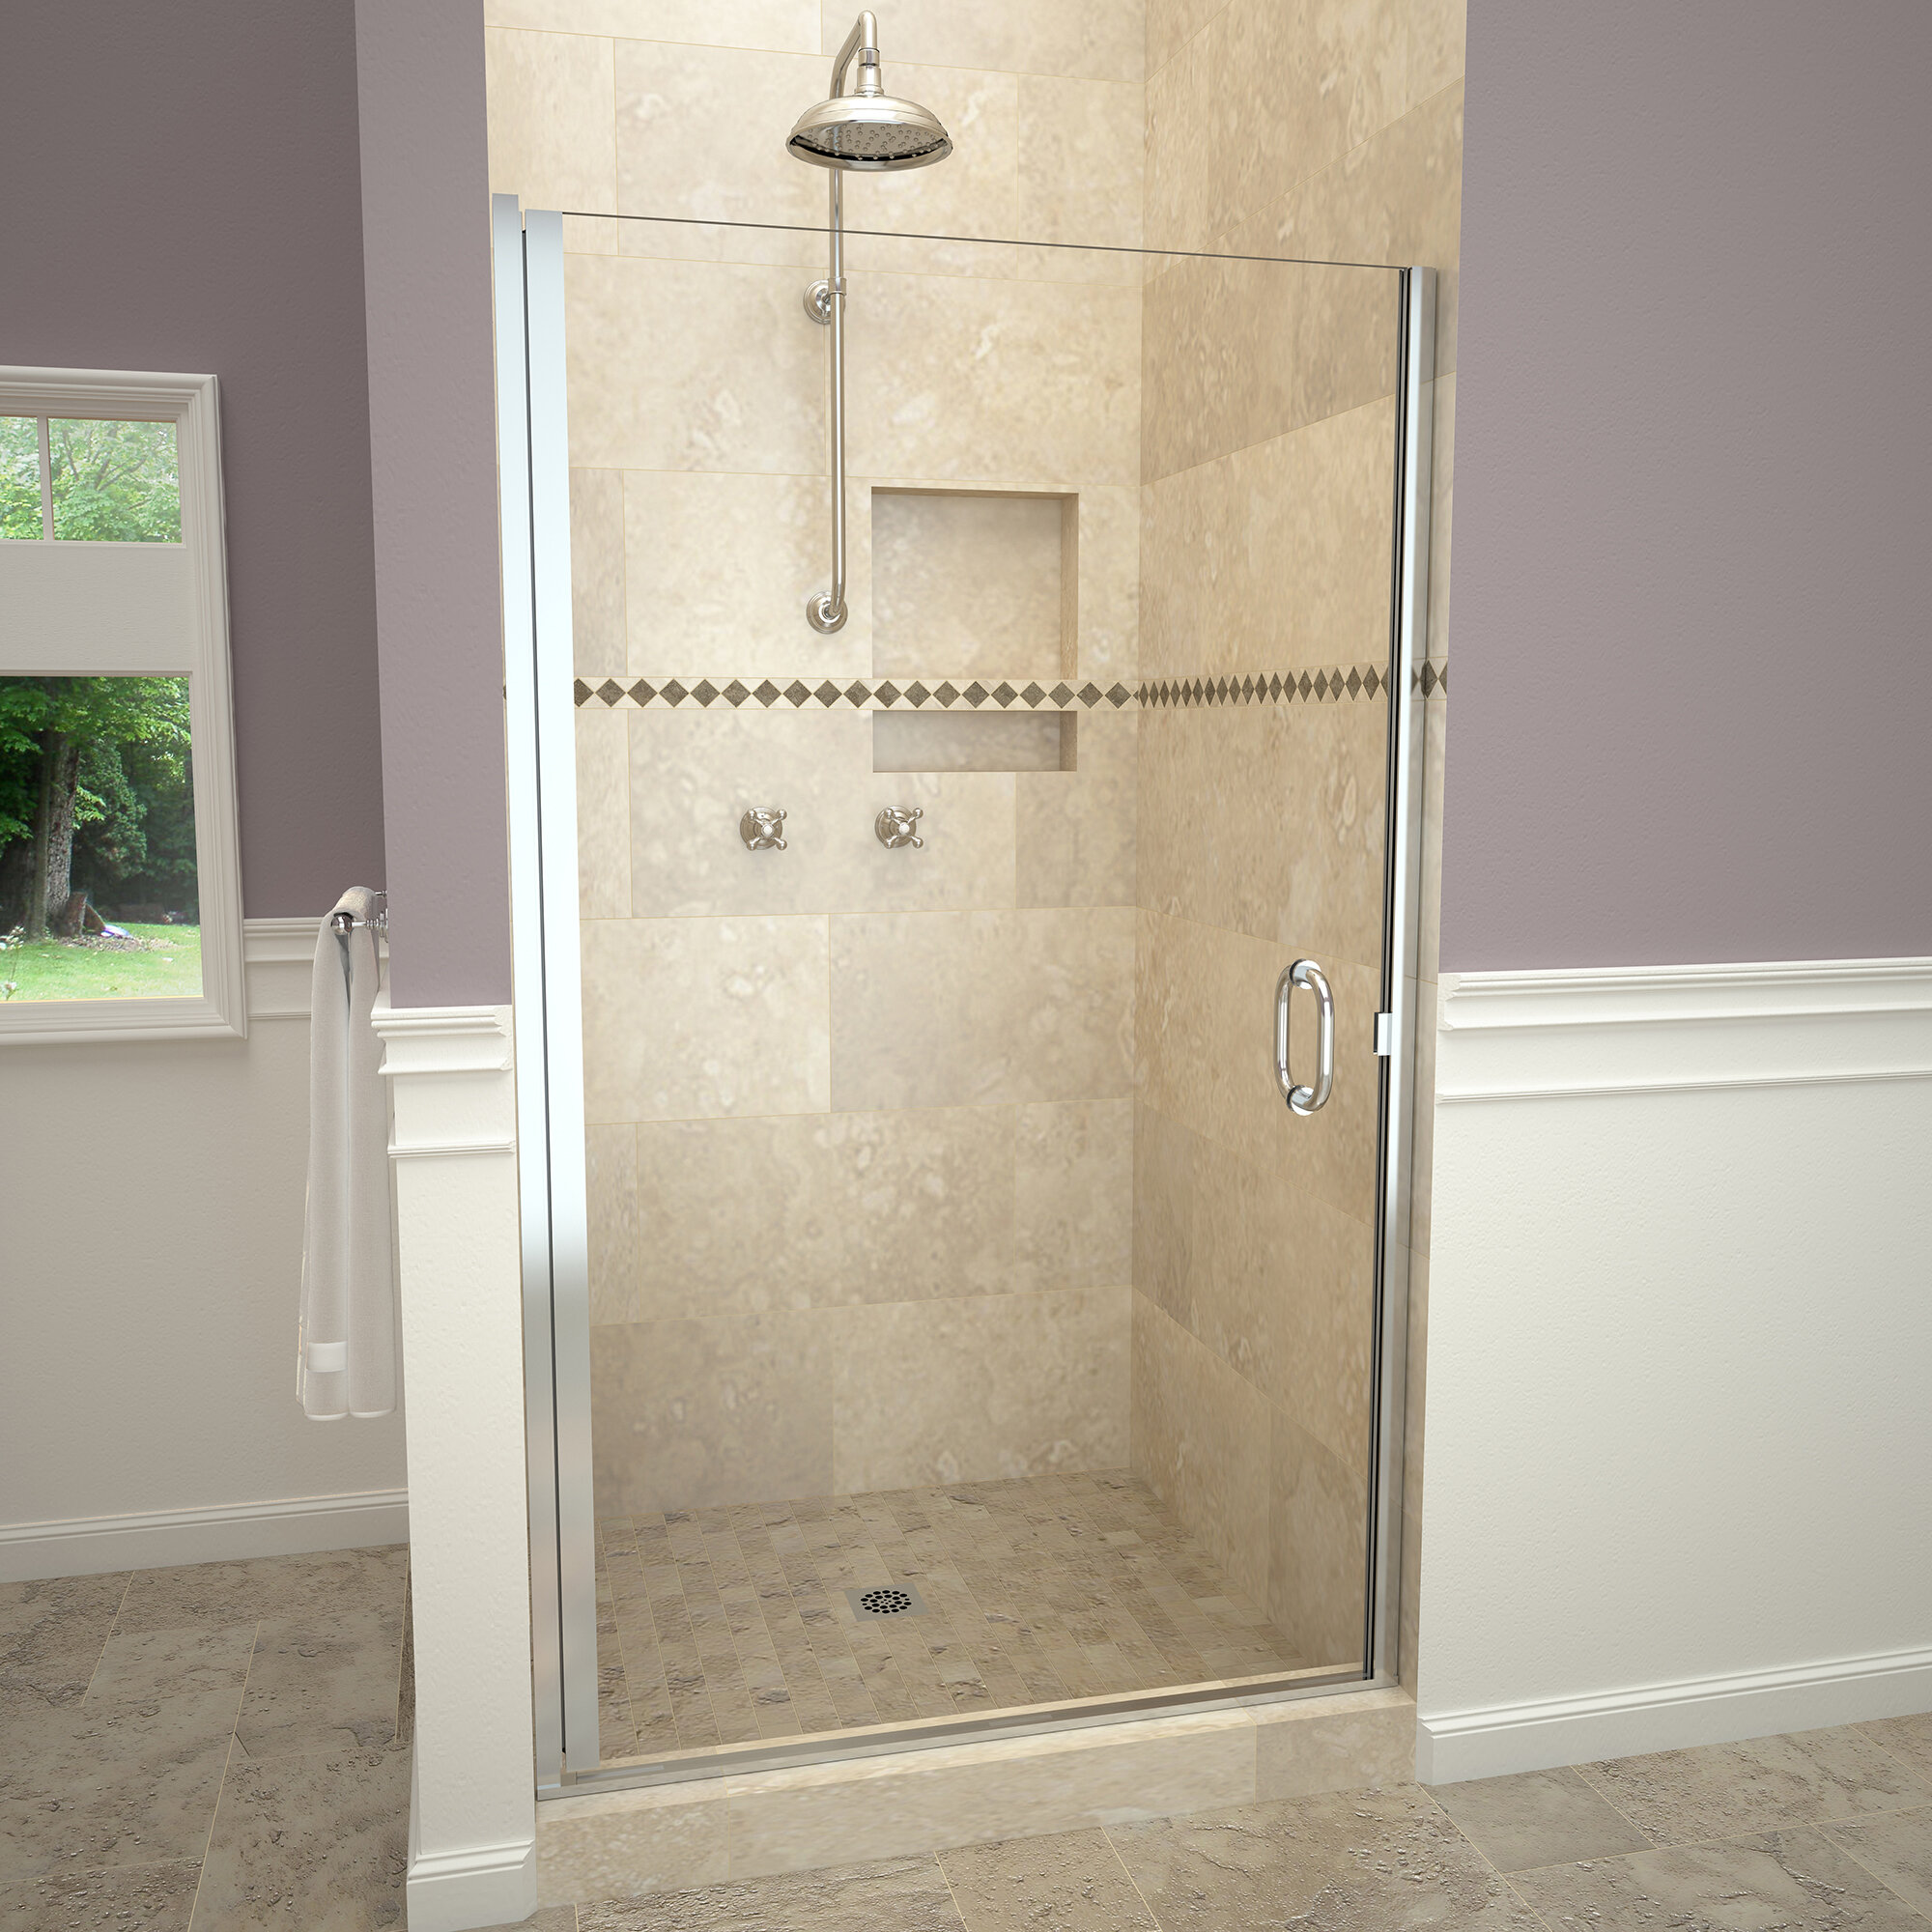 Details About 1200 Series Swing 28 X 72 Hinged Semi Frameless Shower Door Polished Chrome